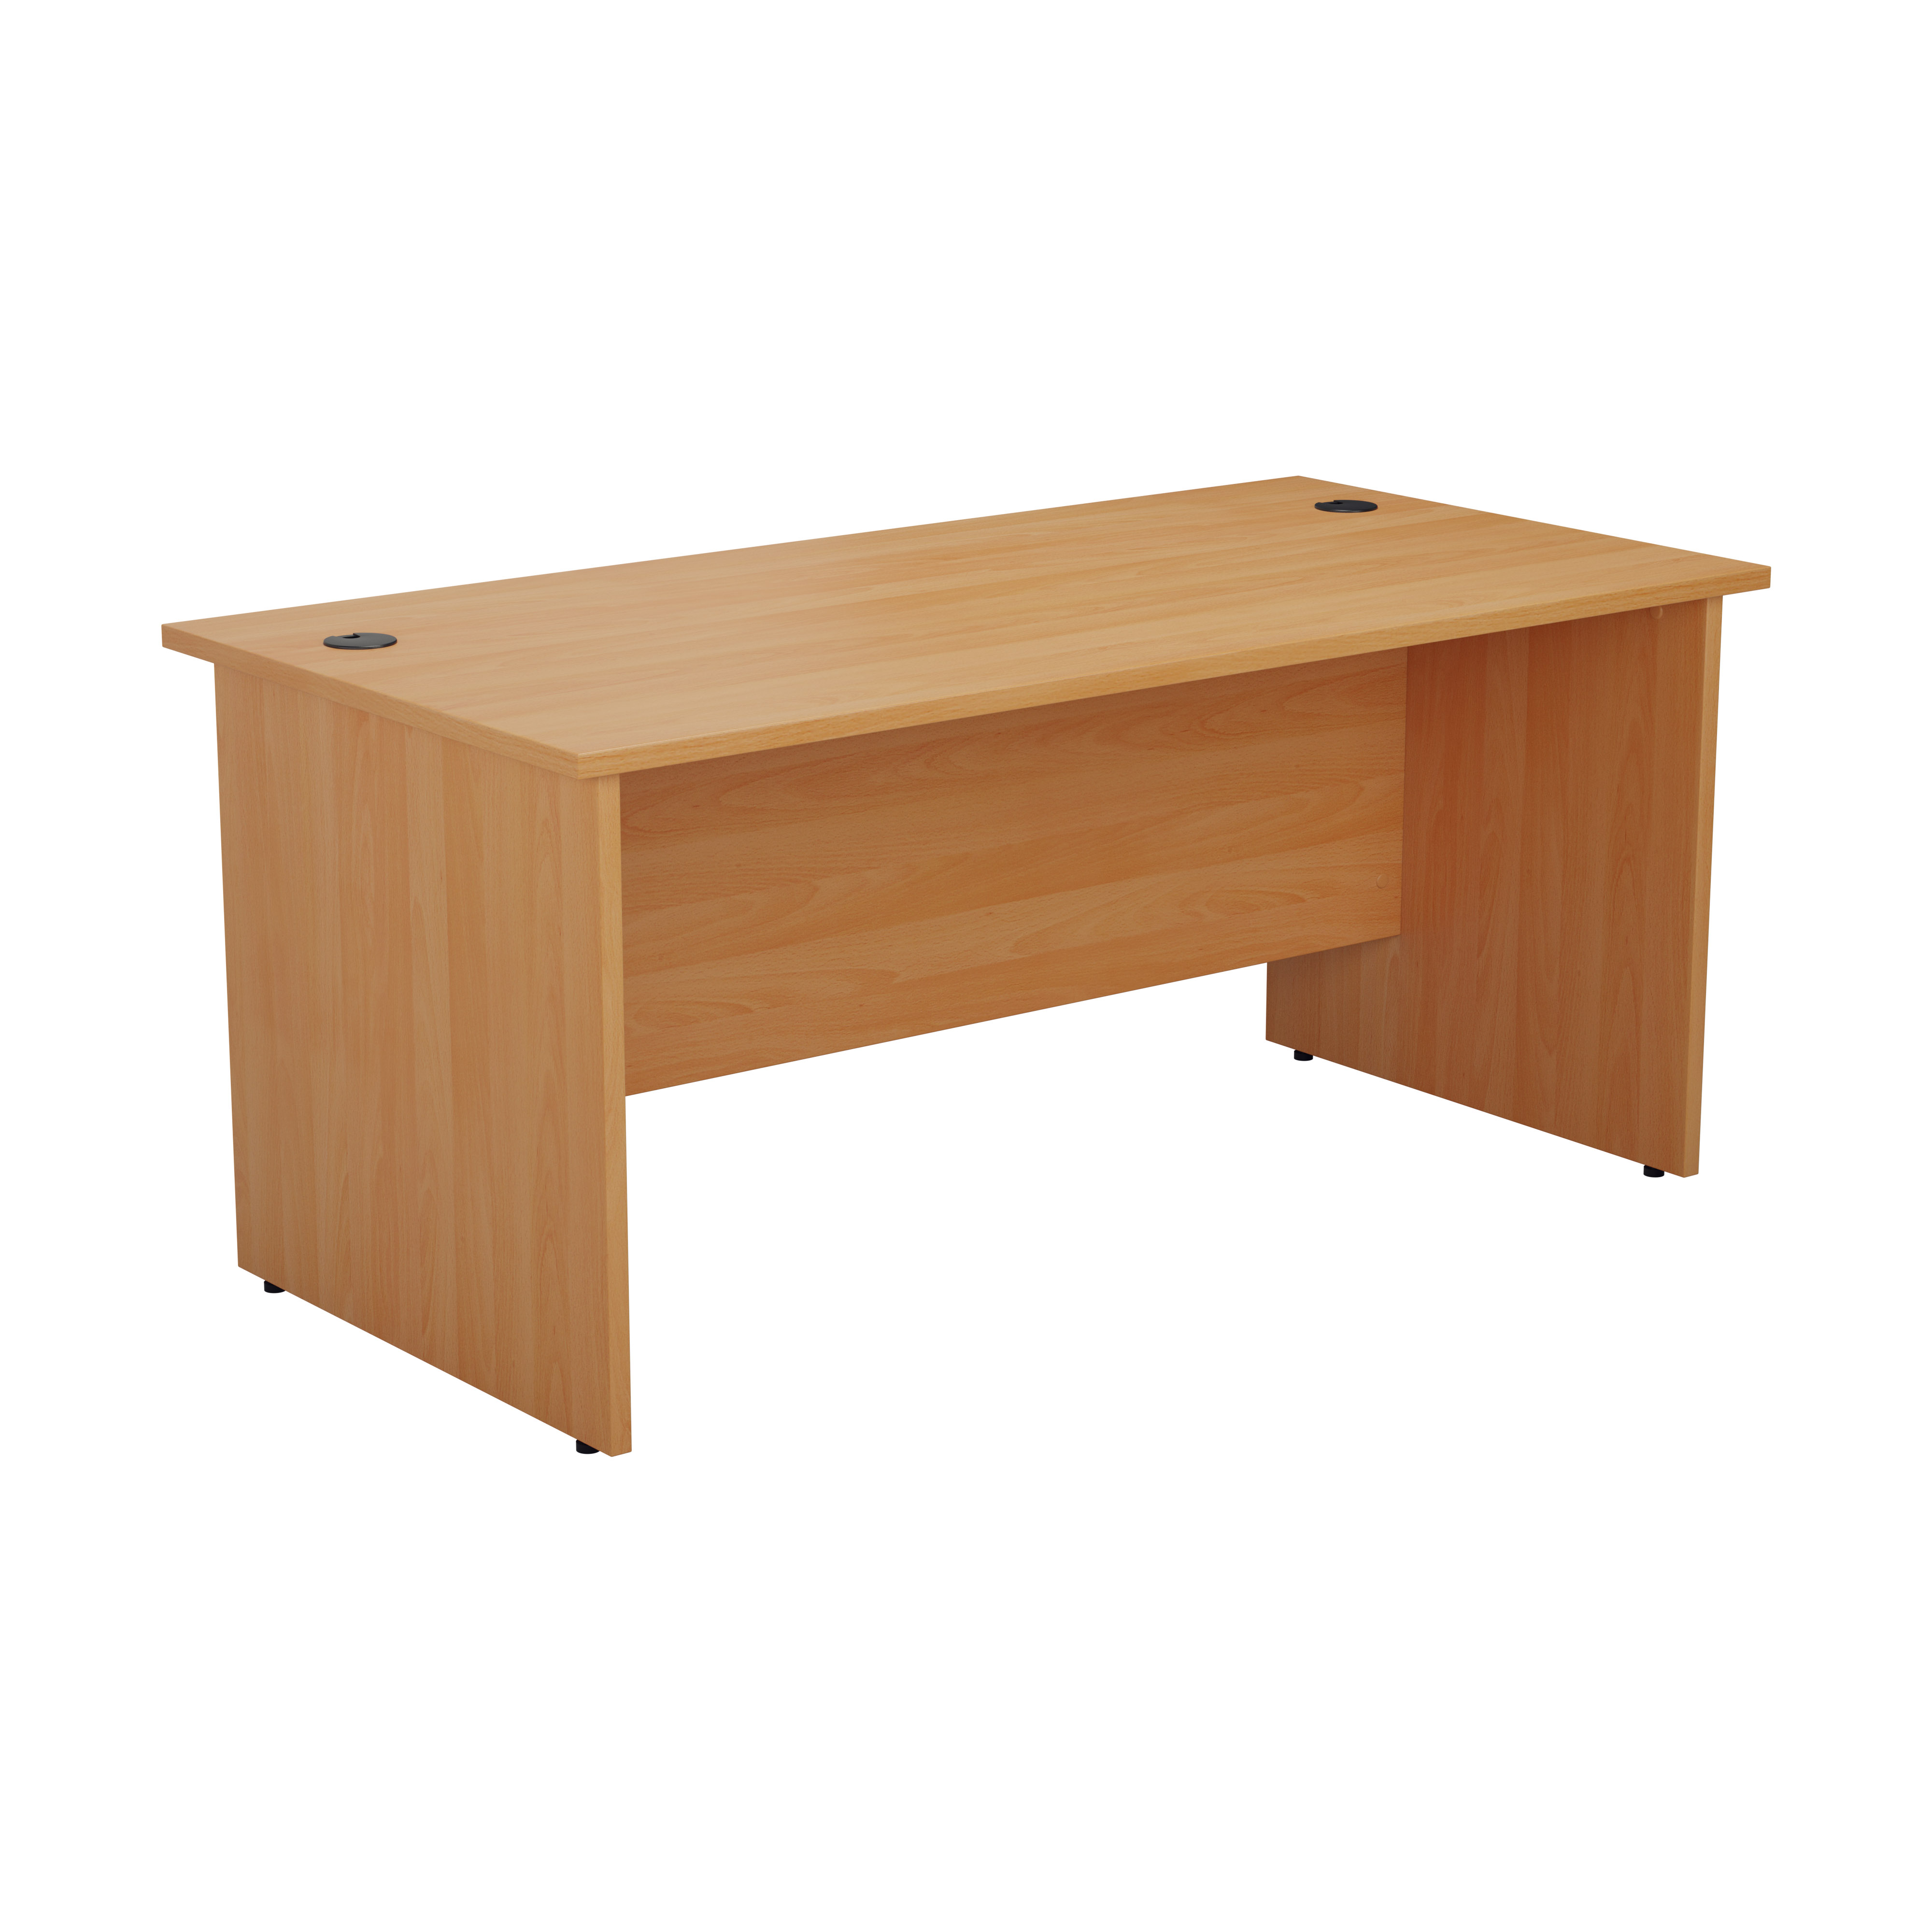 Essentials - 1600mm Panel End Rectangular Desk